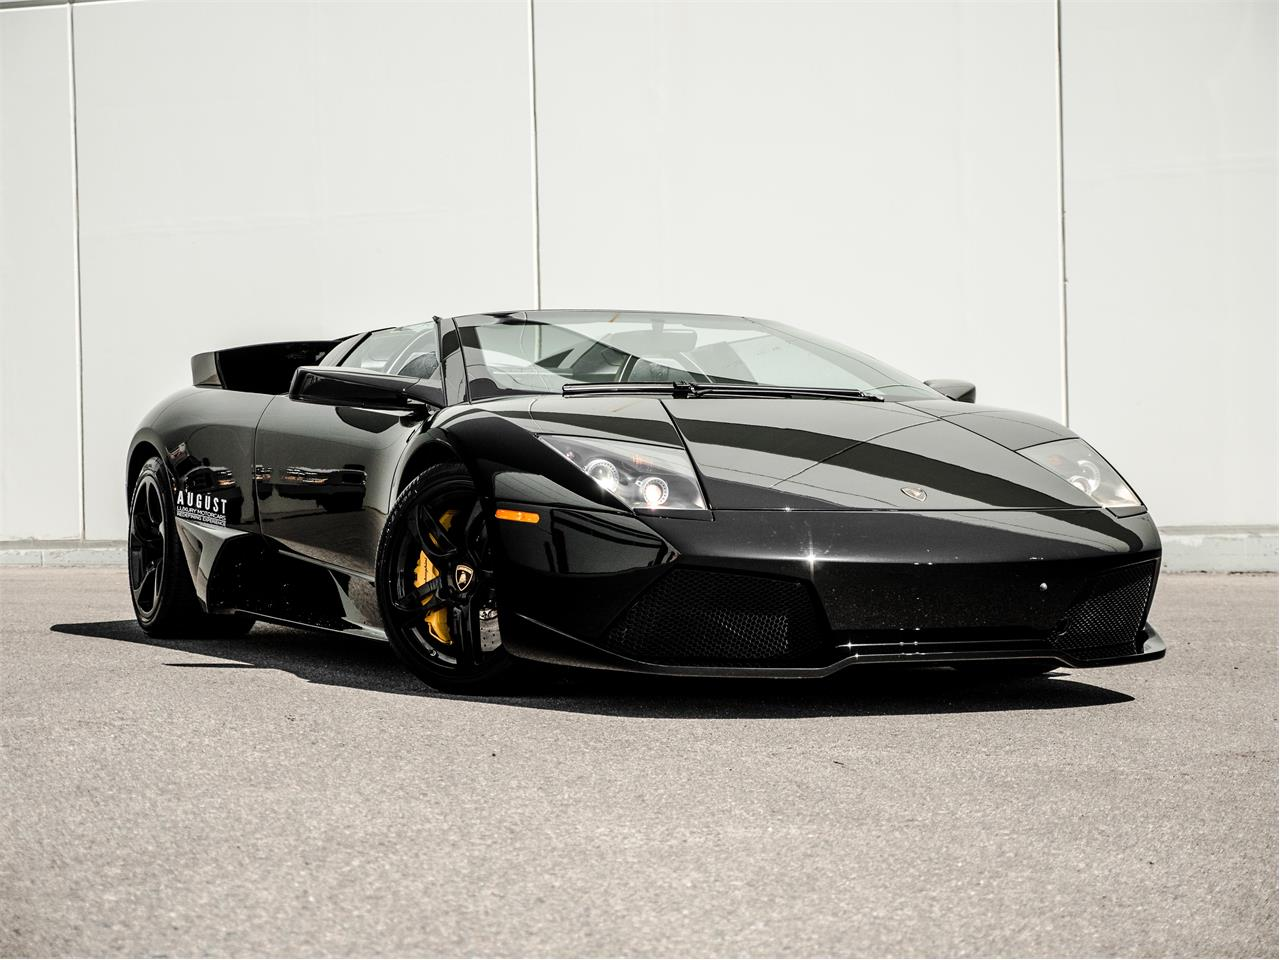 2008 Lamborghini Murcielago (CC-1380042) for sale in Kelowna, British Columbia